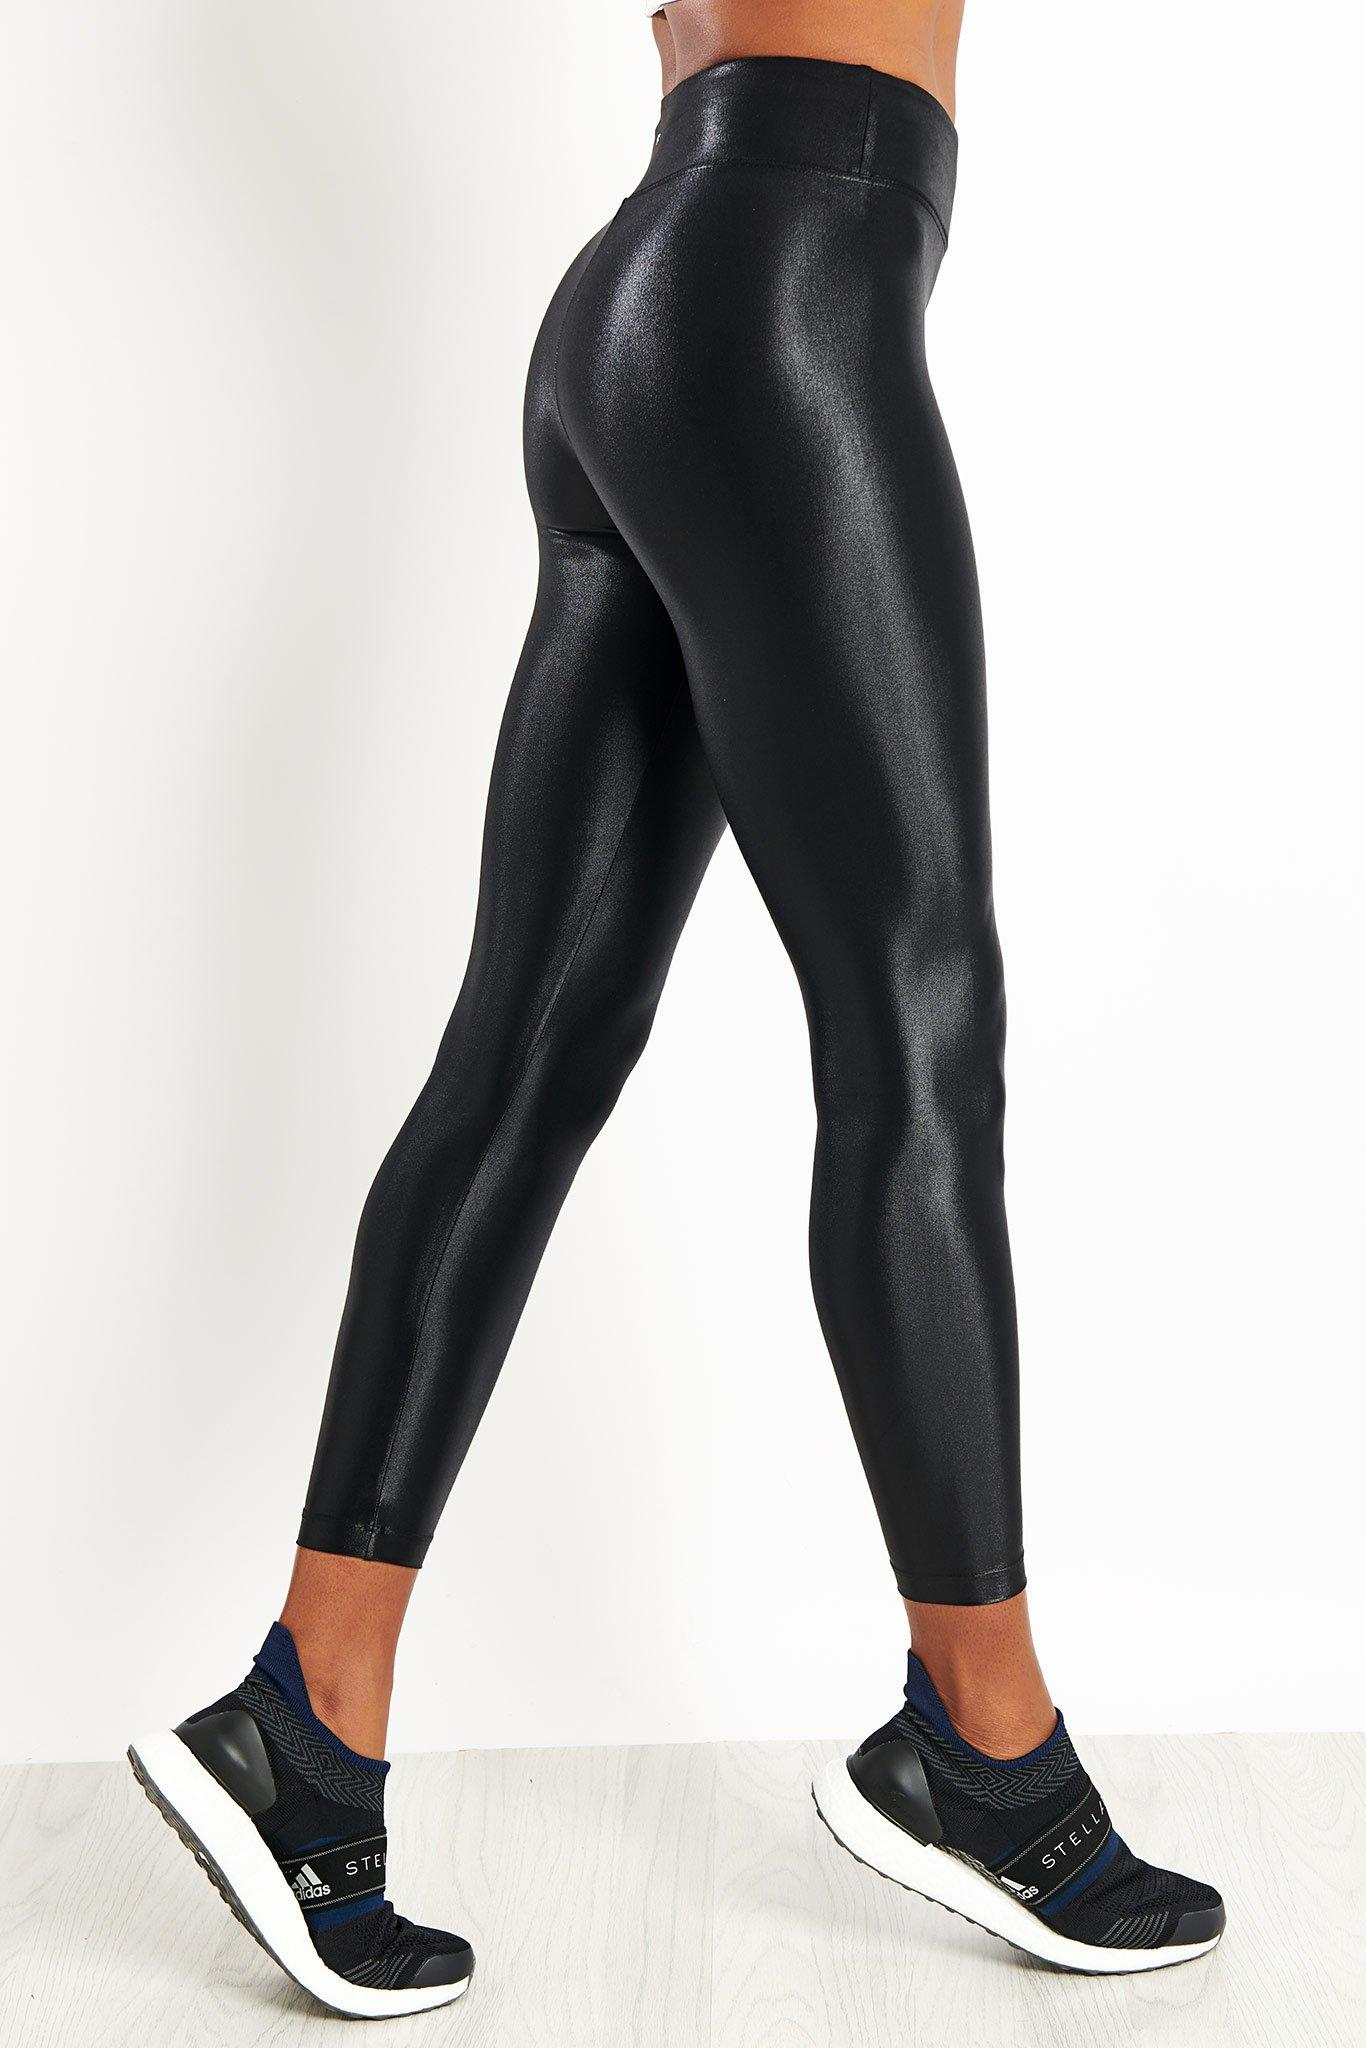 Koral Synthetic Lustrous High Waisted Legging Black